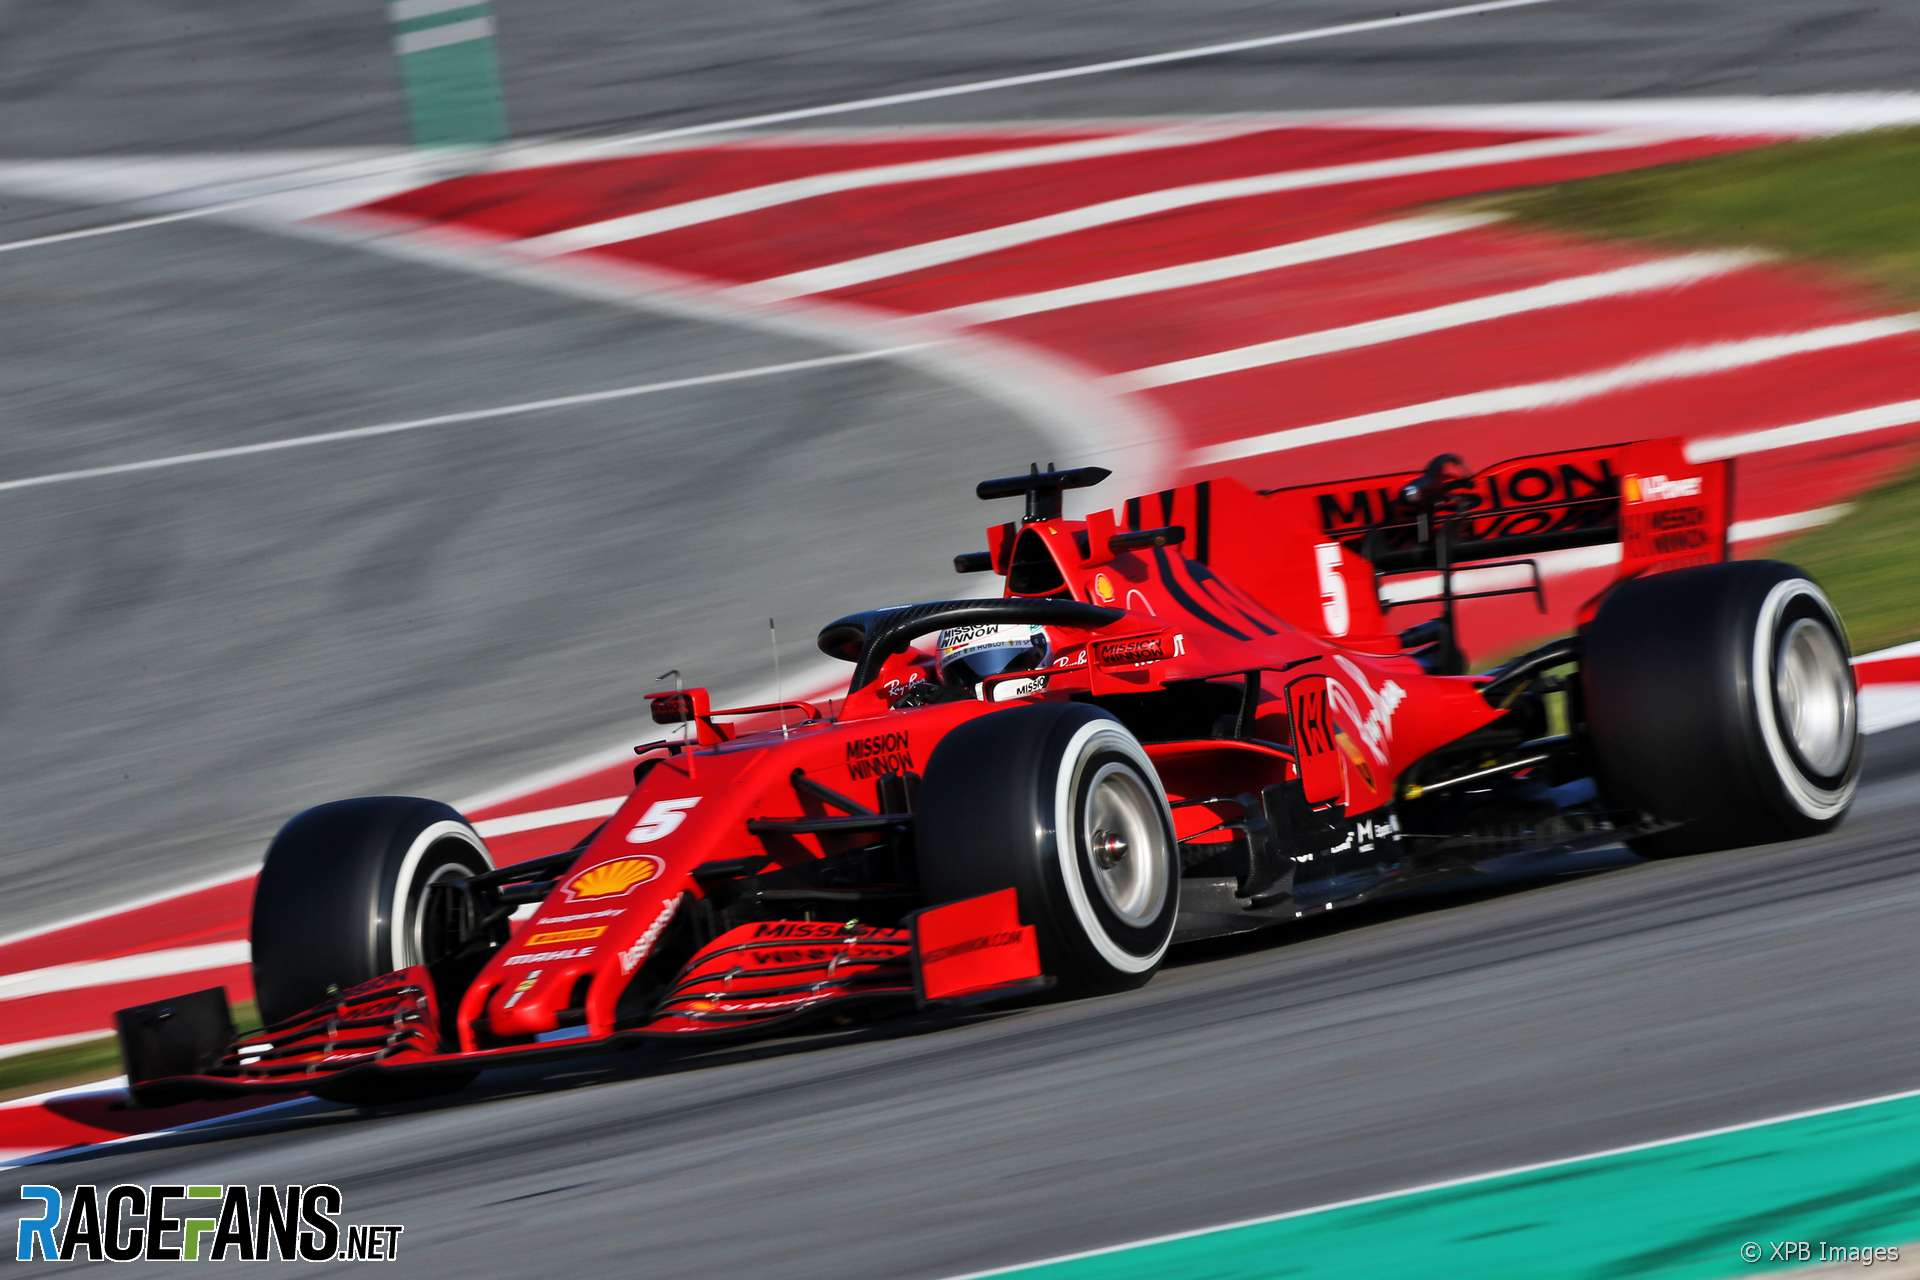 Ferrari: We are not as fast as our rivals · RaceFans